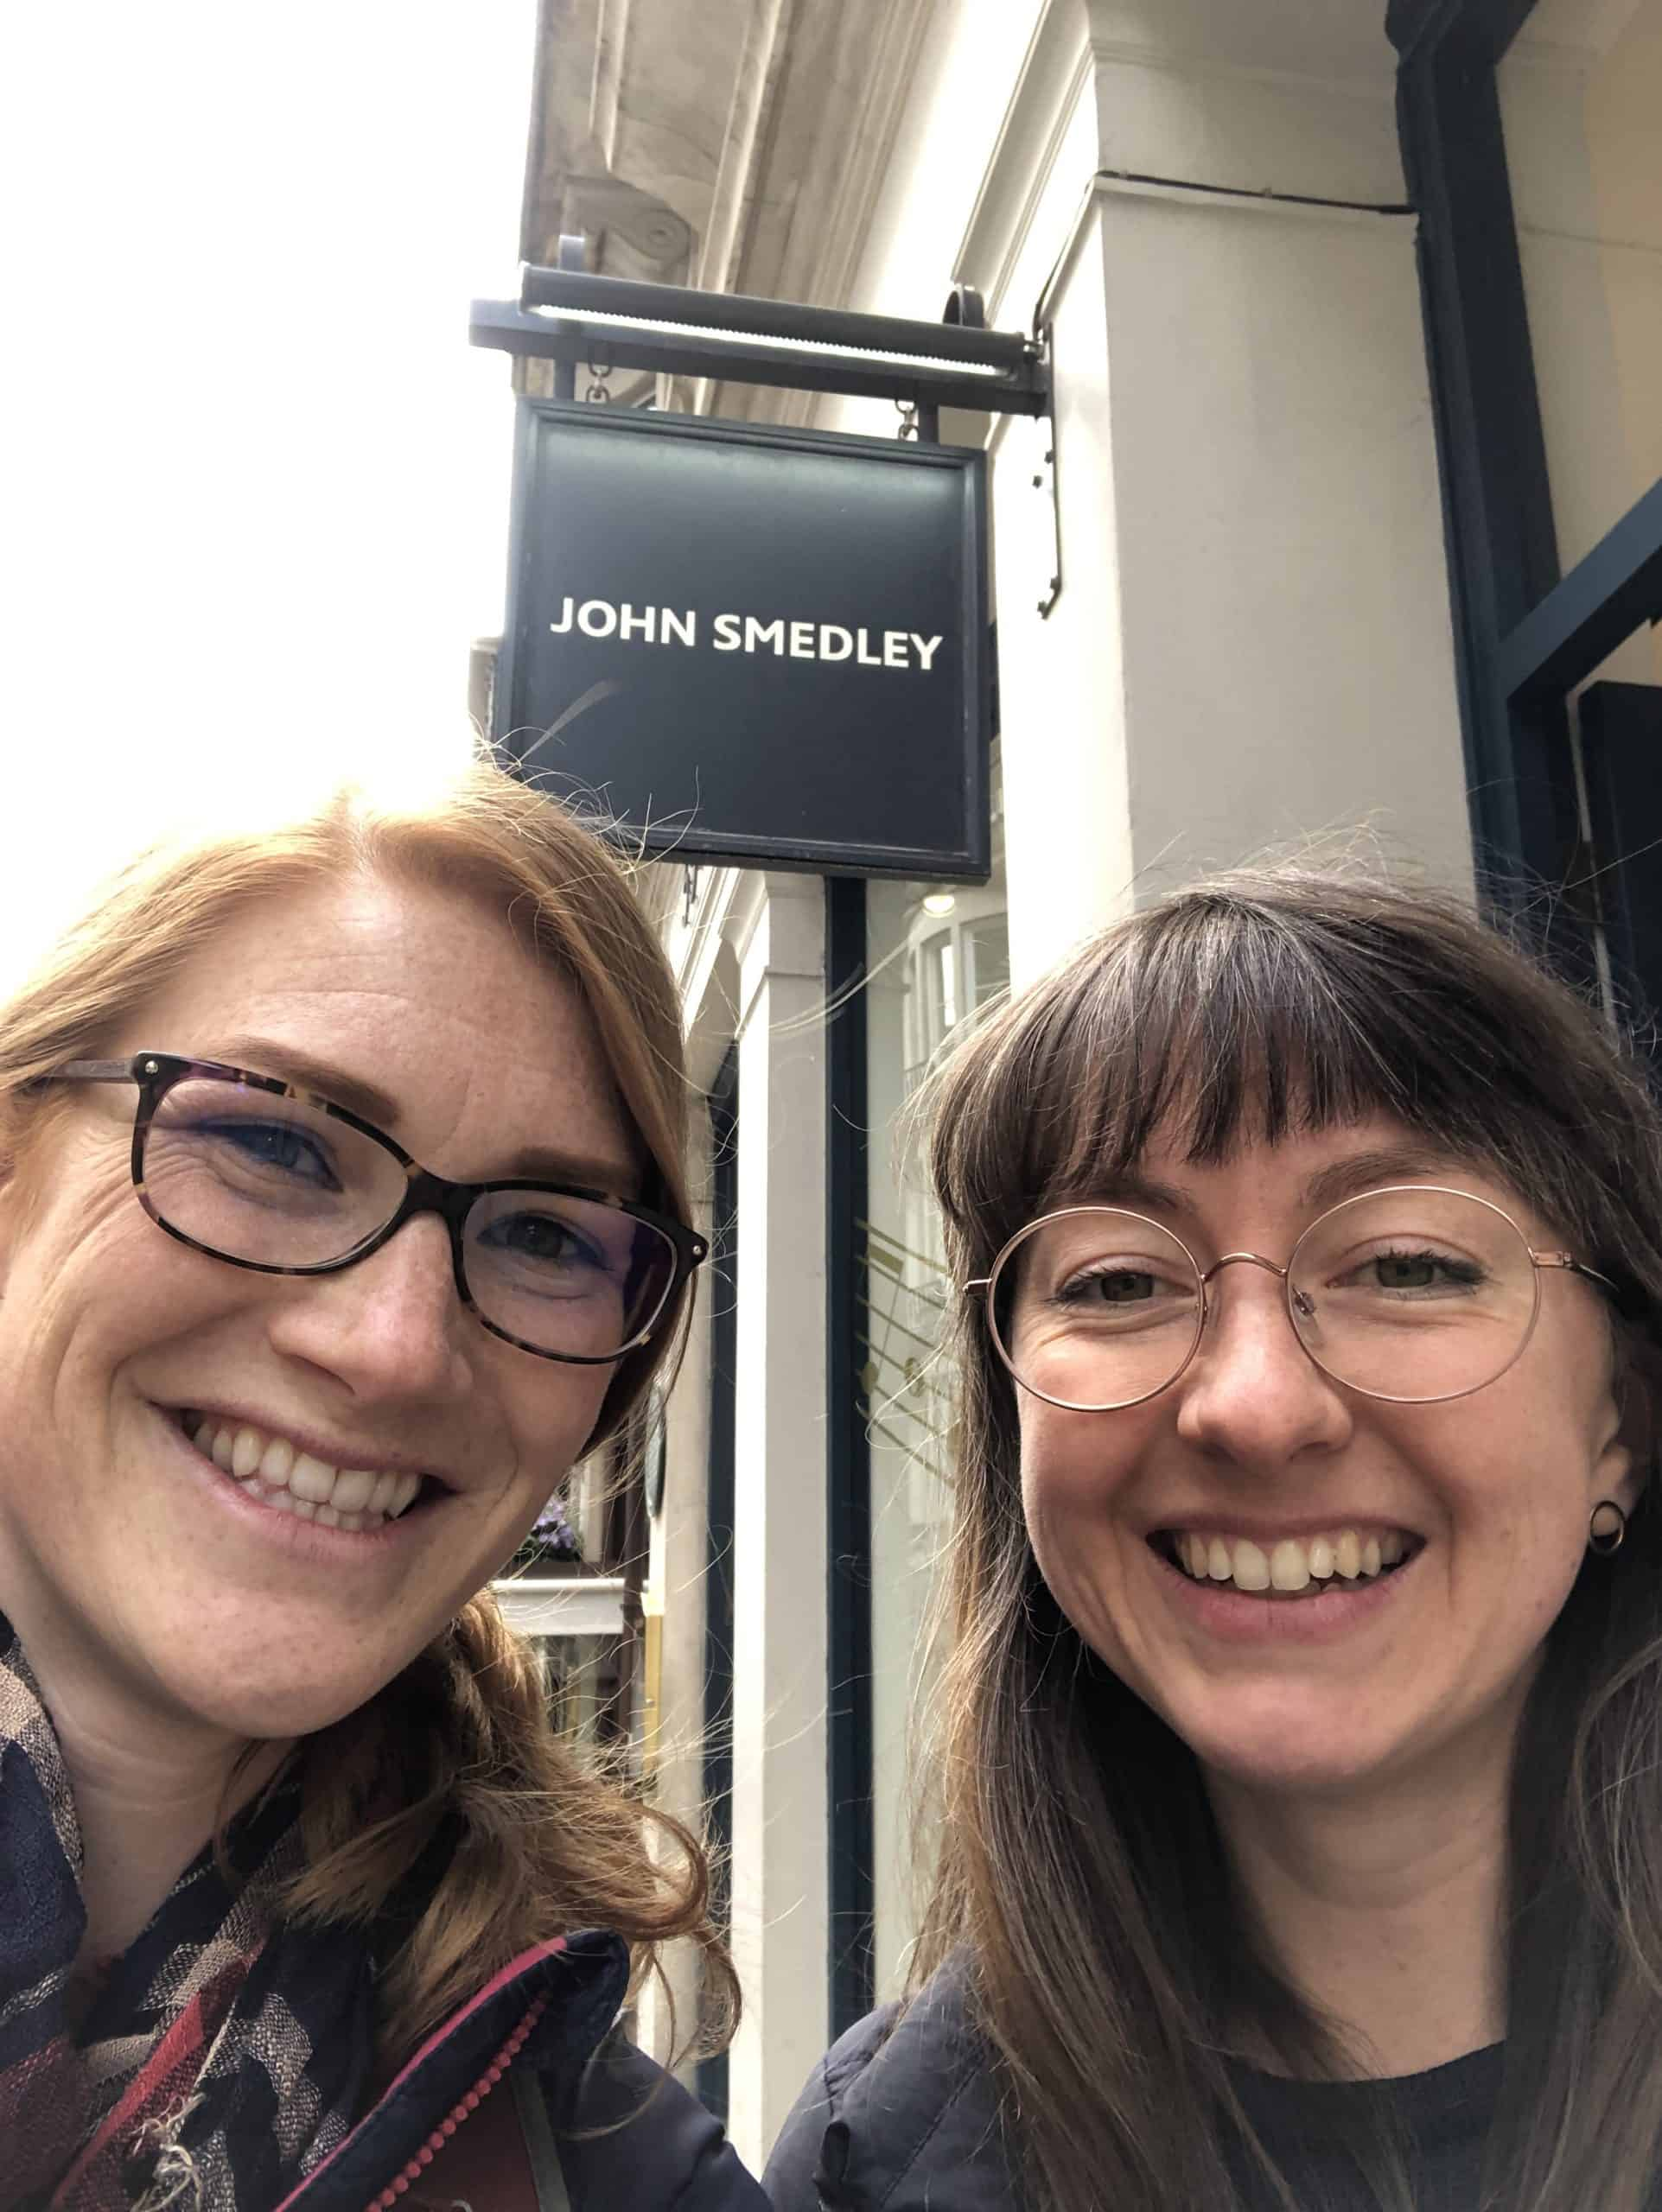 Zoe Wilson and Alice Walton standing outside the John Smedley store